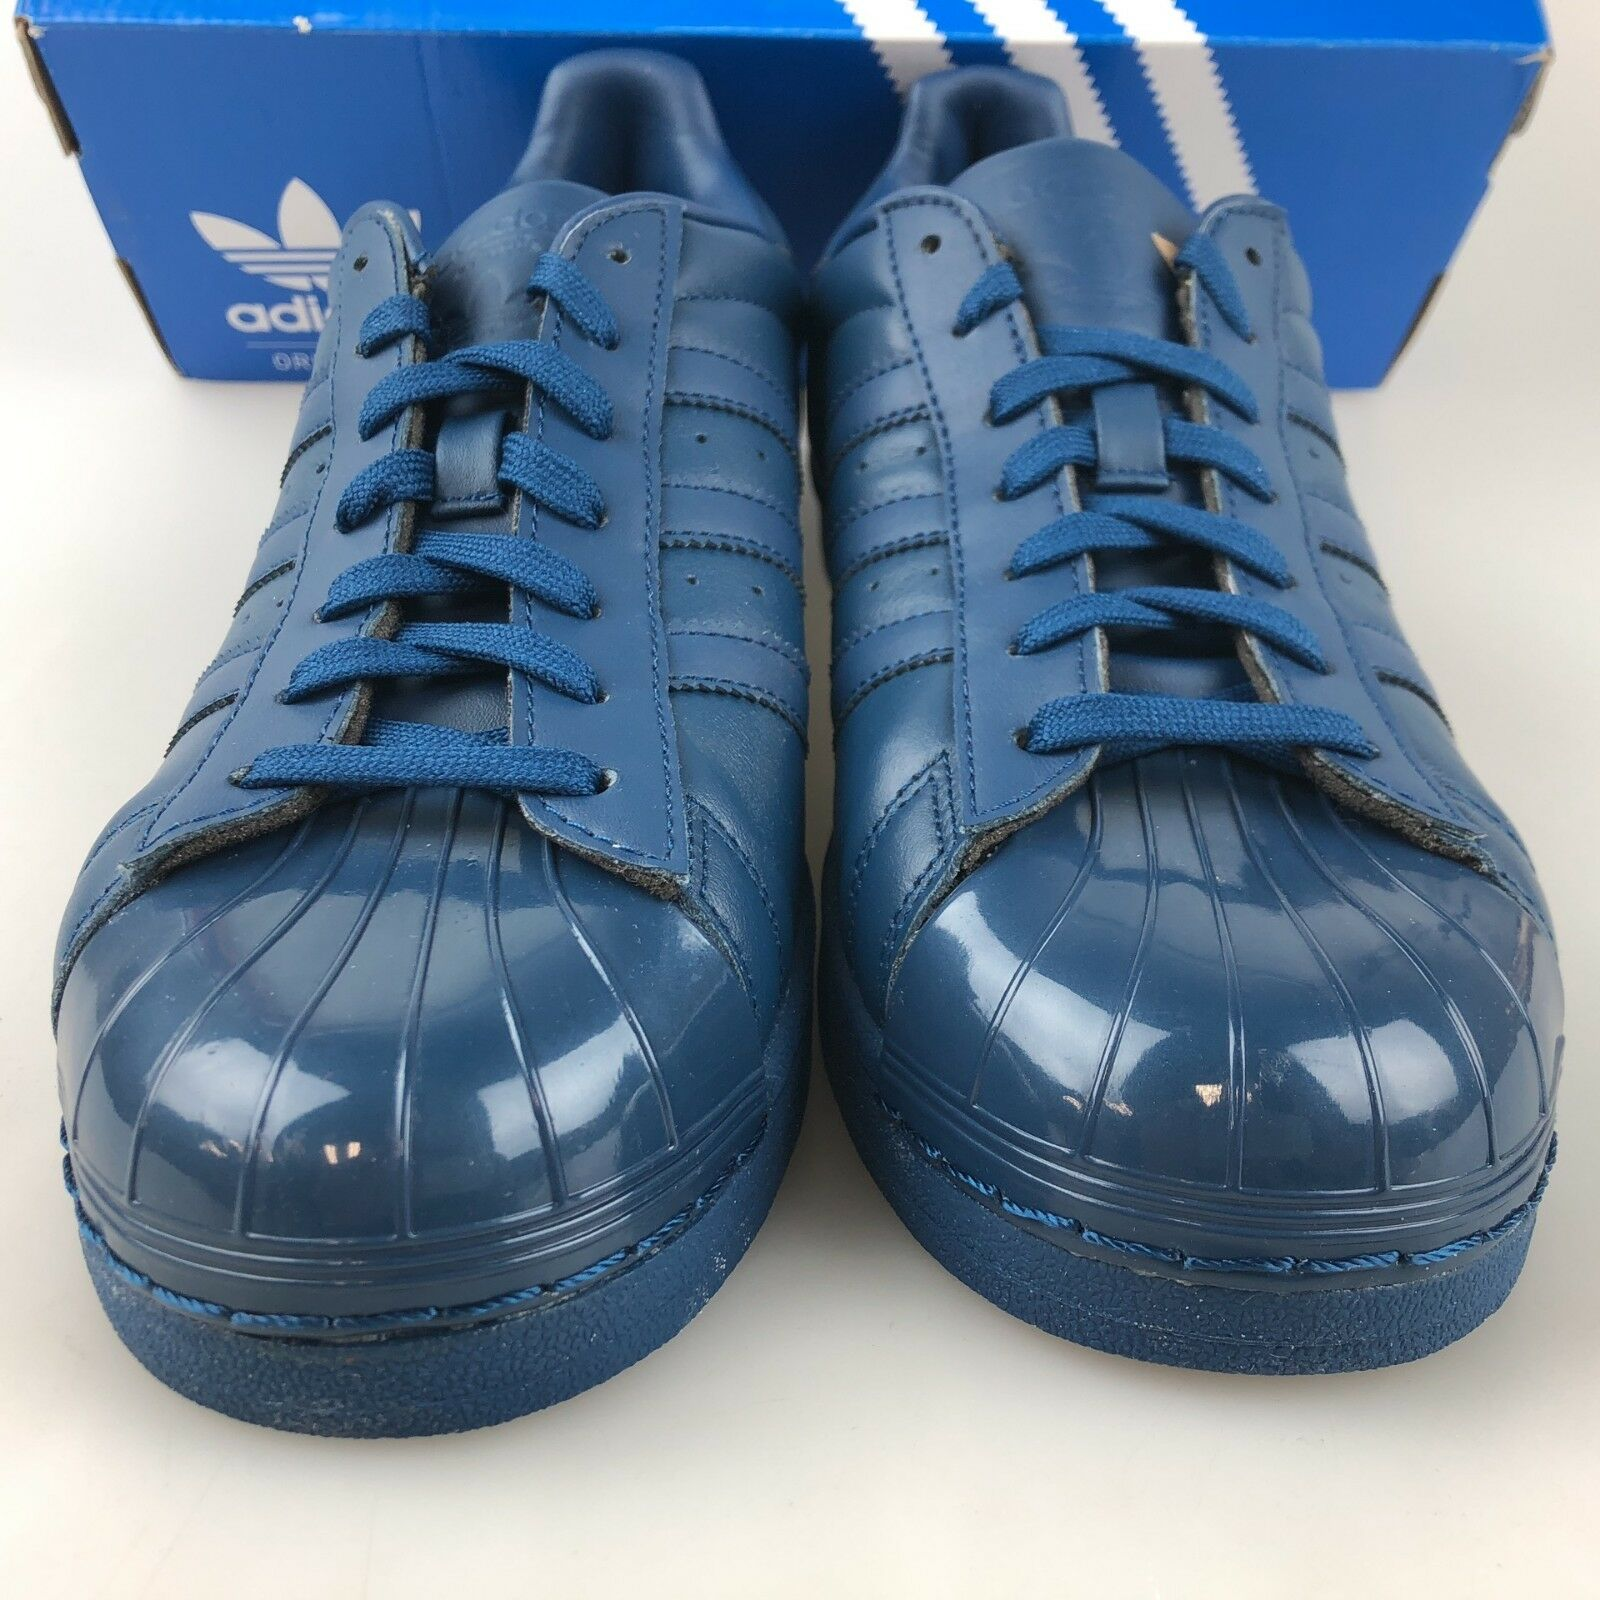 Adidas Damens Originals Superstar Glossy Toe Trainers Trainers Trainers Blau S76723 4b385e